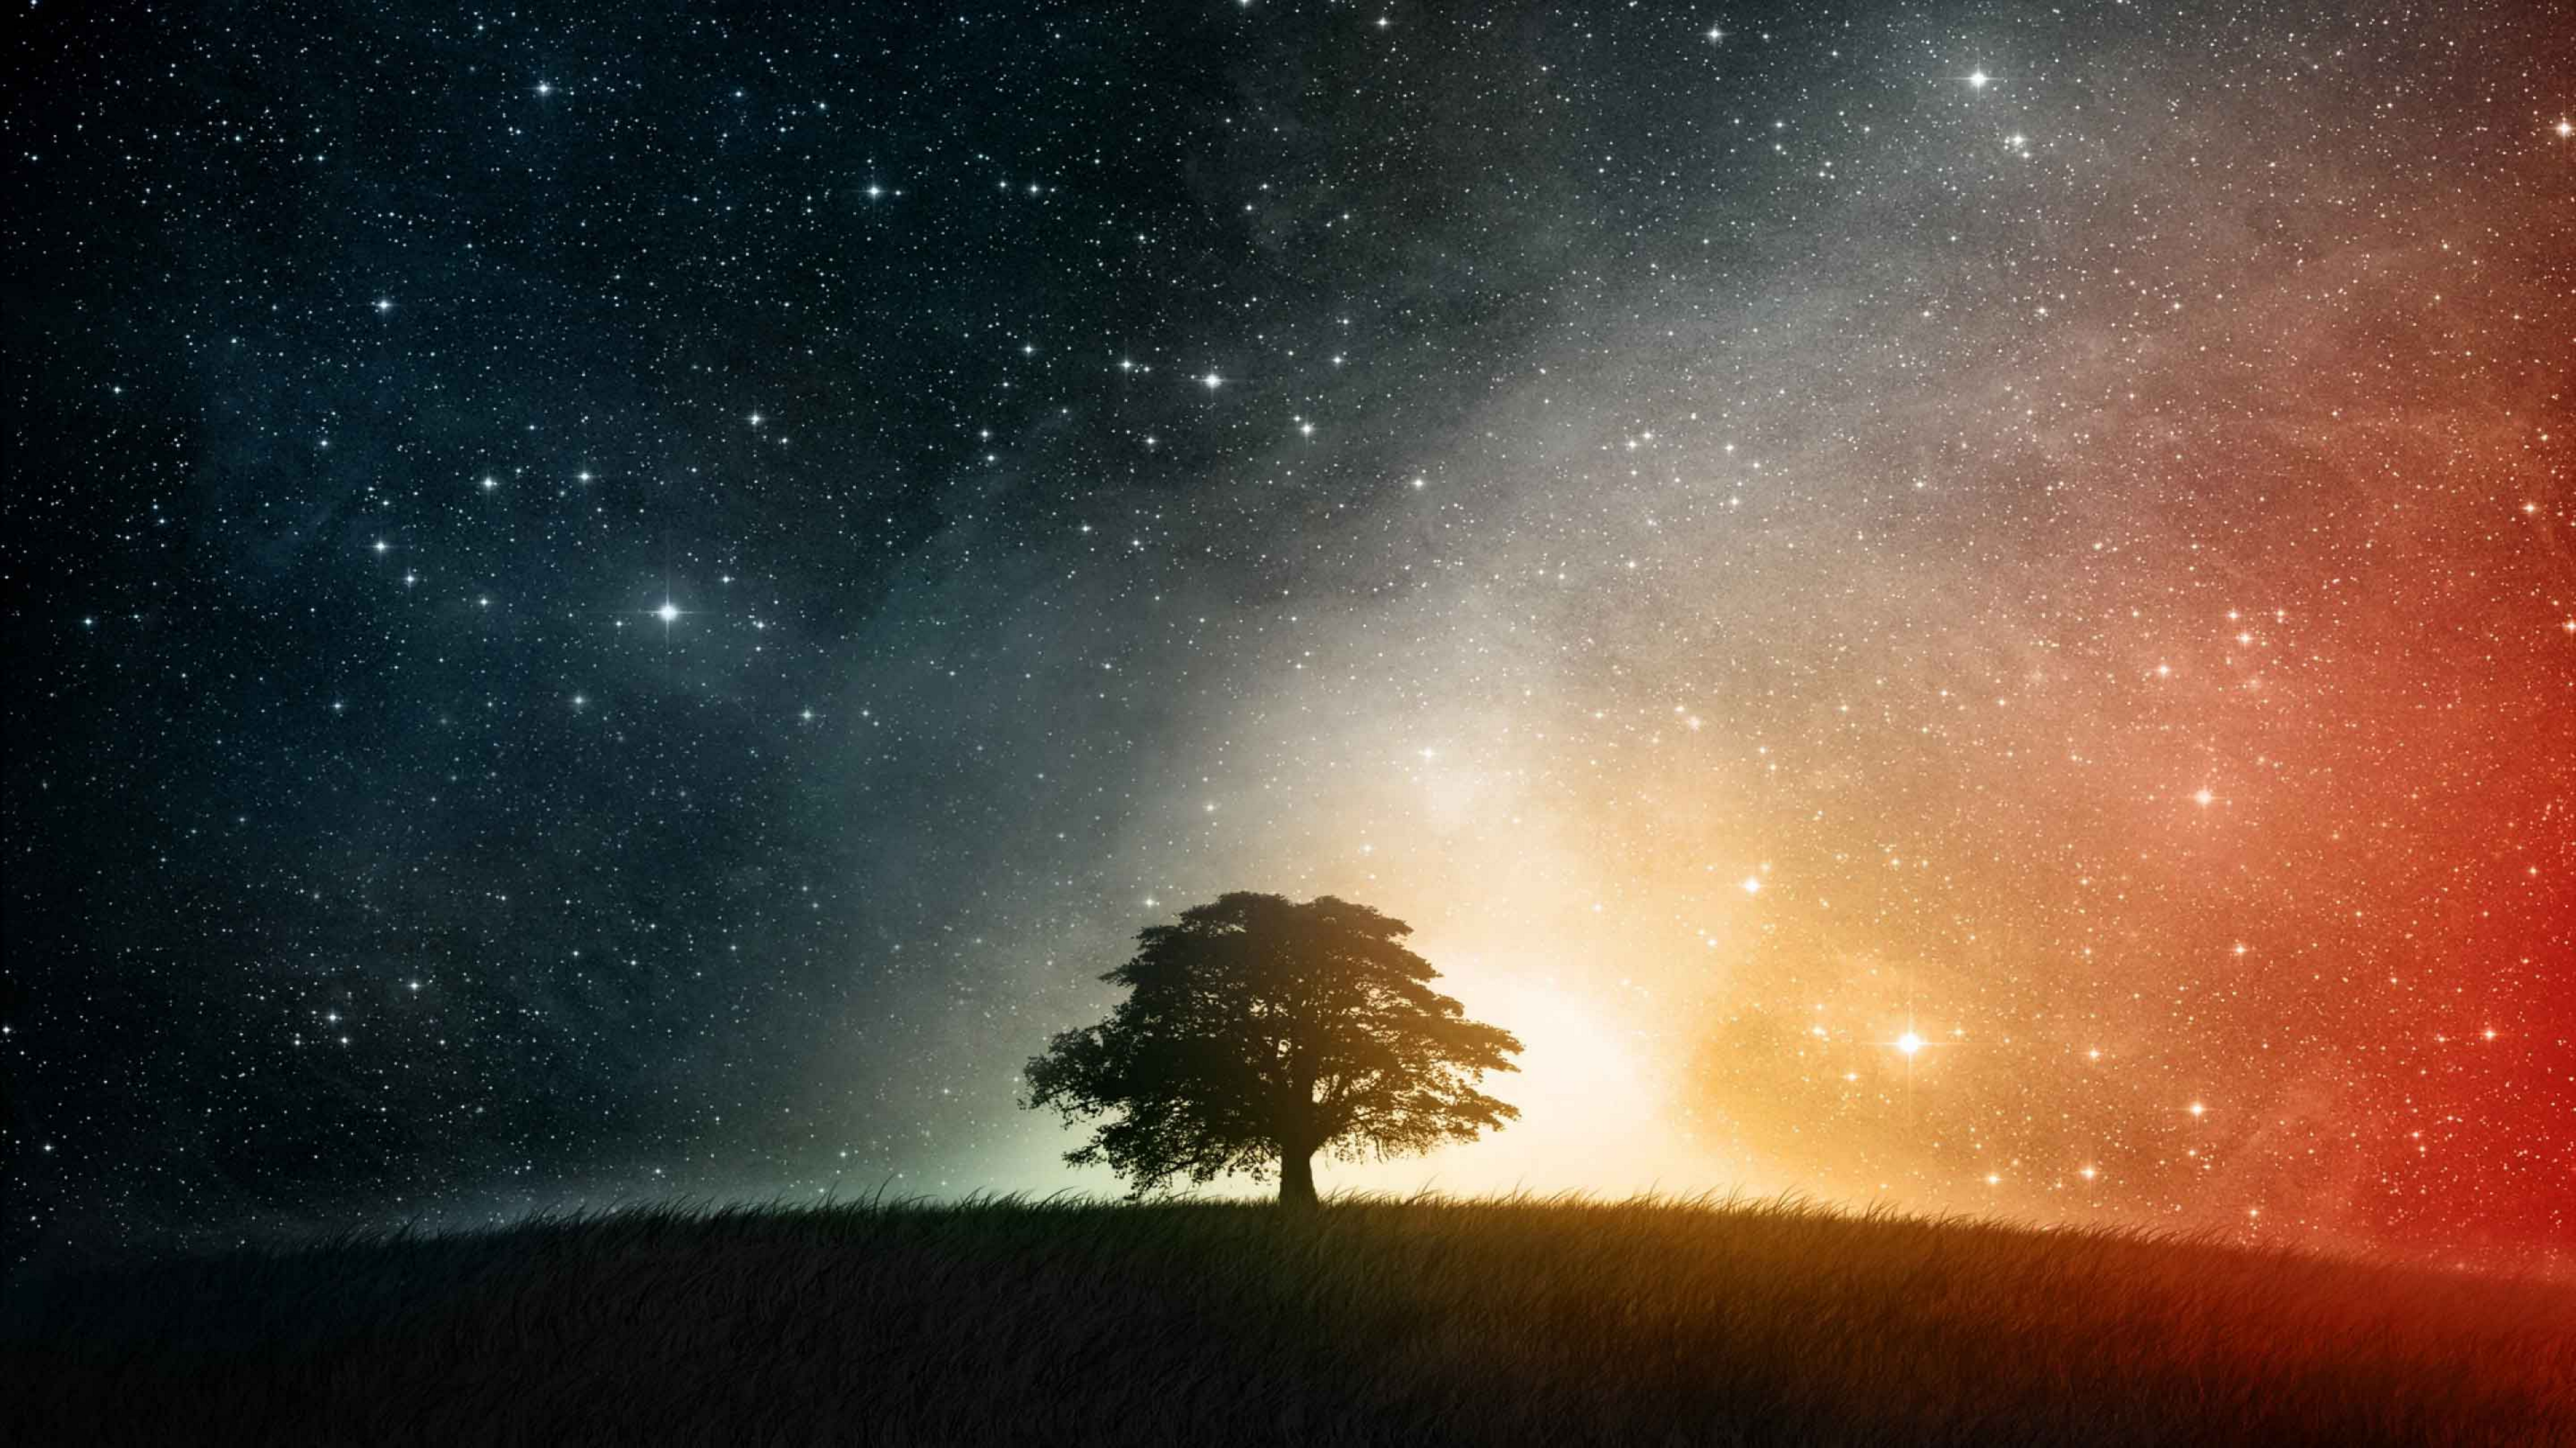 Tree and Stars original with original resolution by Linux-Shines